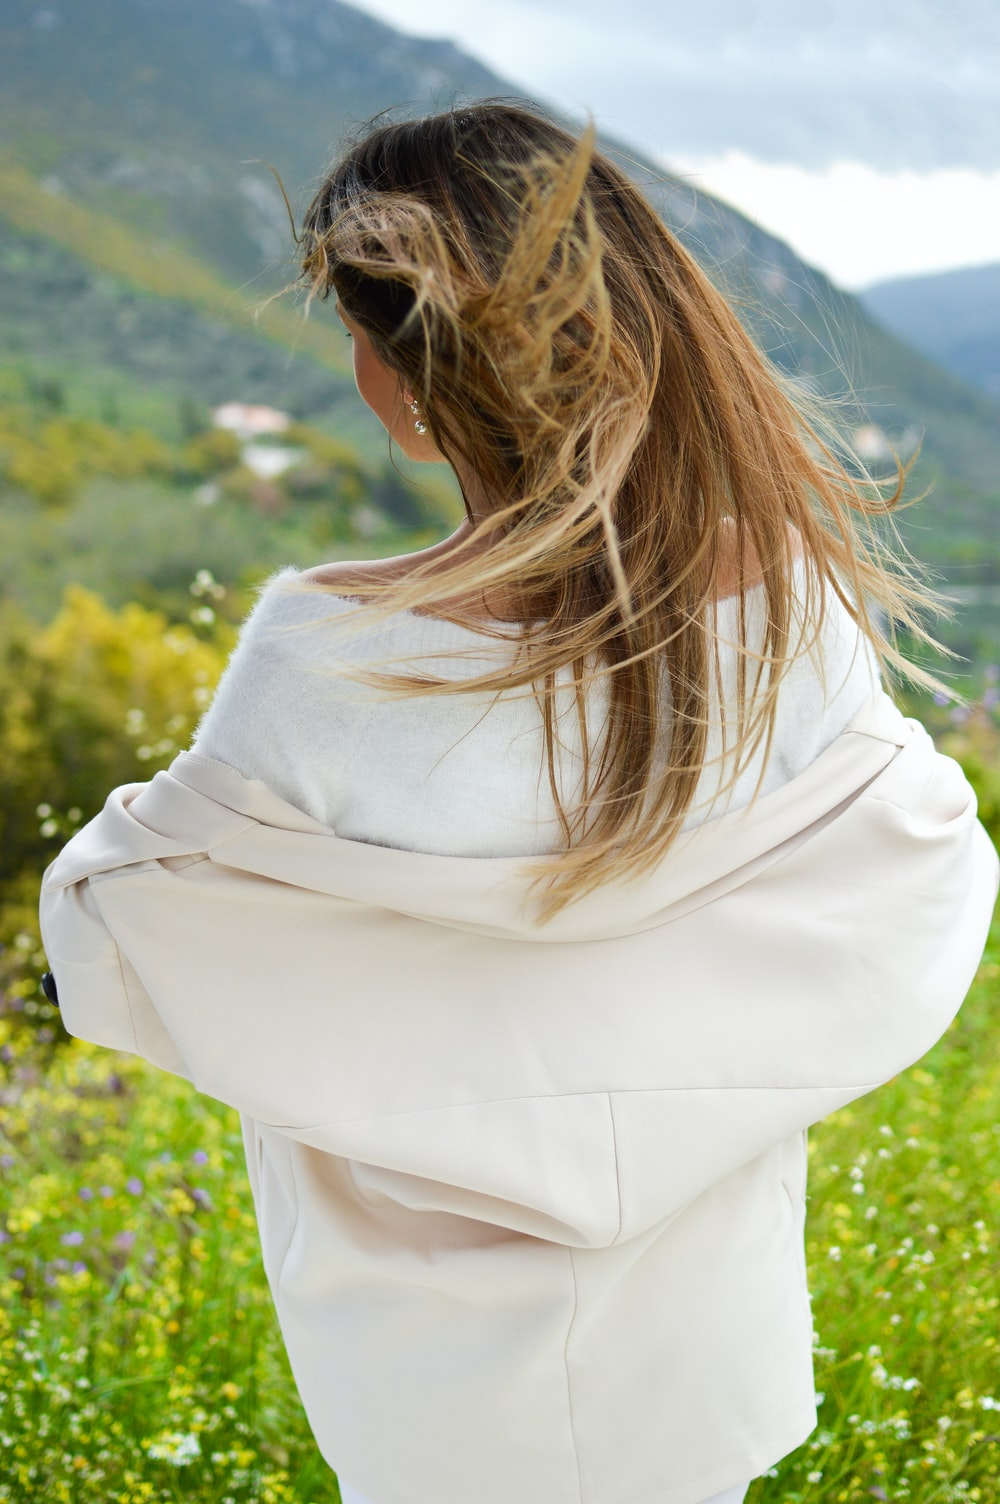 woman wearing white top facing the field during day